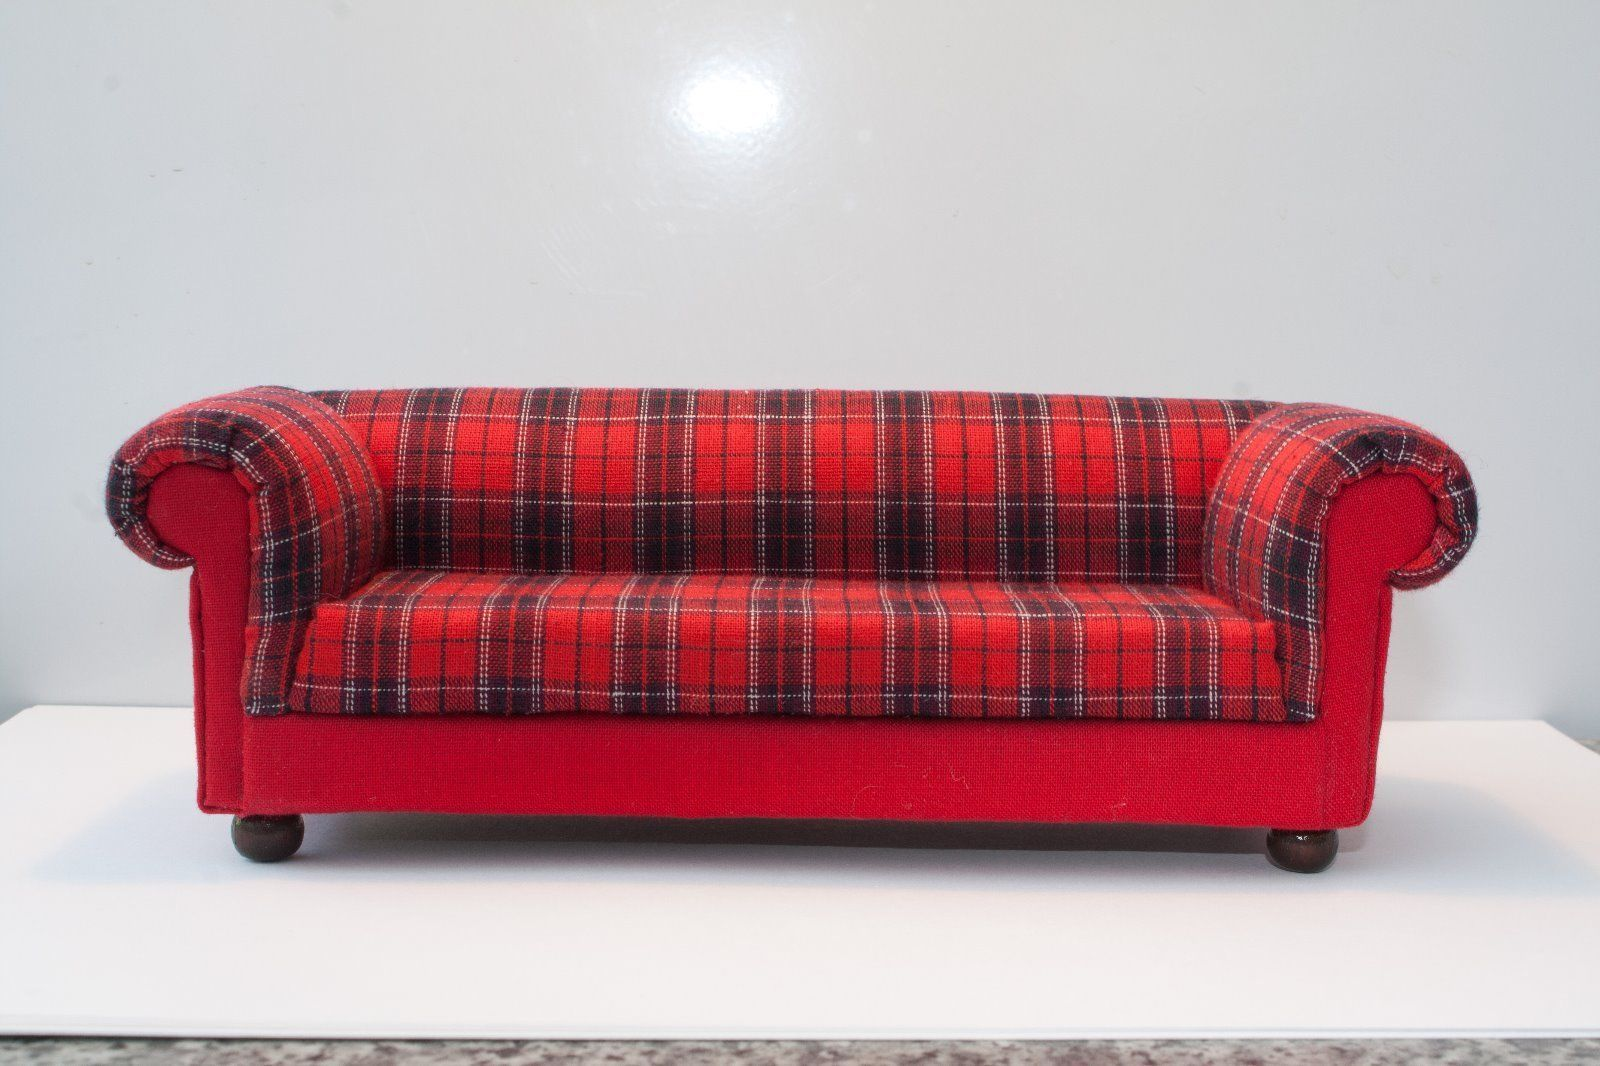 tartan chesterfield sofa change leather singapore red style dolls house 12th scale